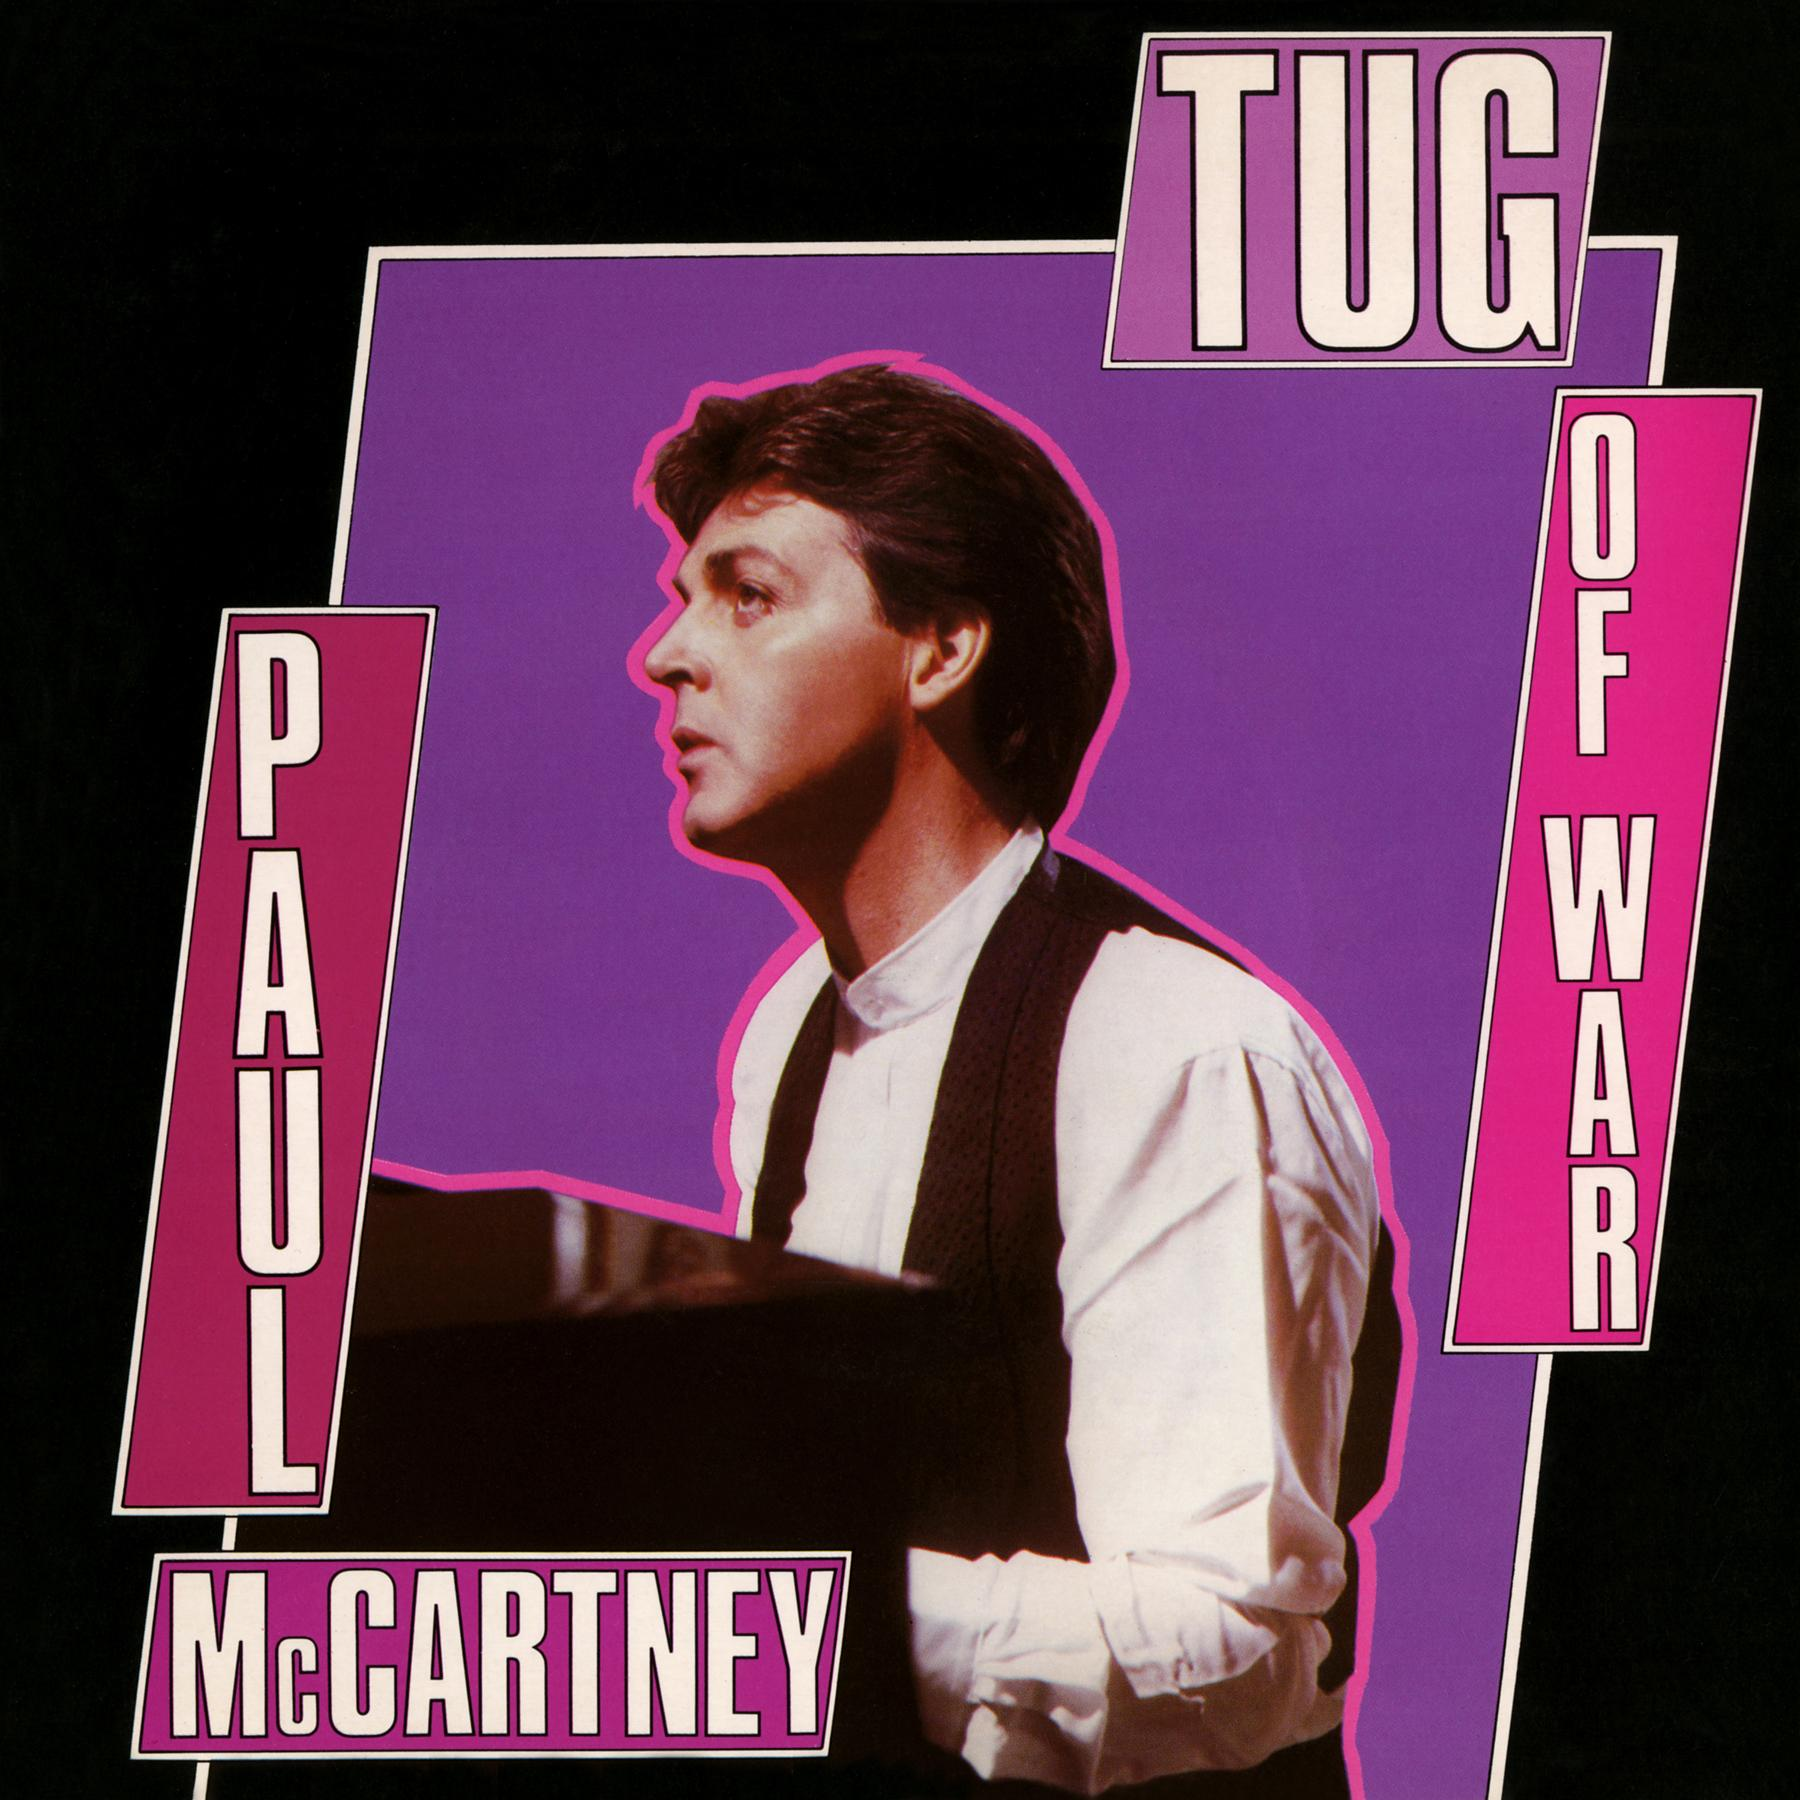 Listen to 'Tug of War (Remix 2015)' HERE: http://t.co/0SxbbmiR43 #ThrowbackThursday #TBT http://t.co/3NkatRGvzO